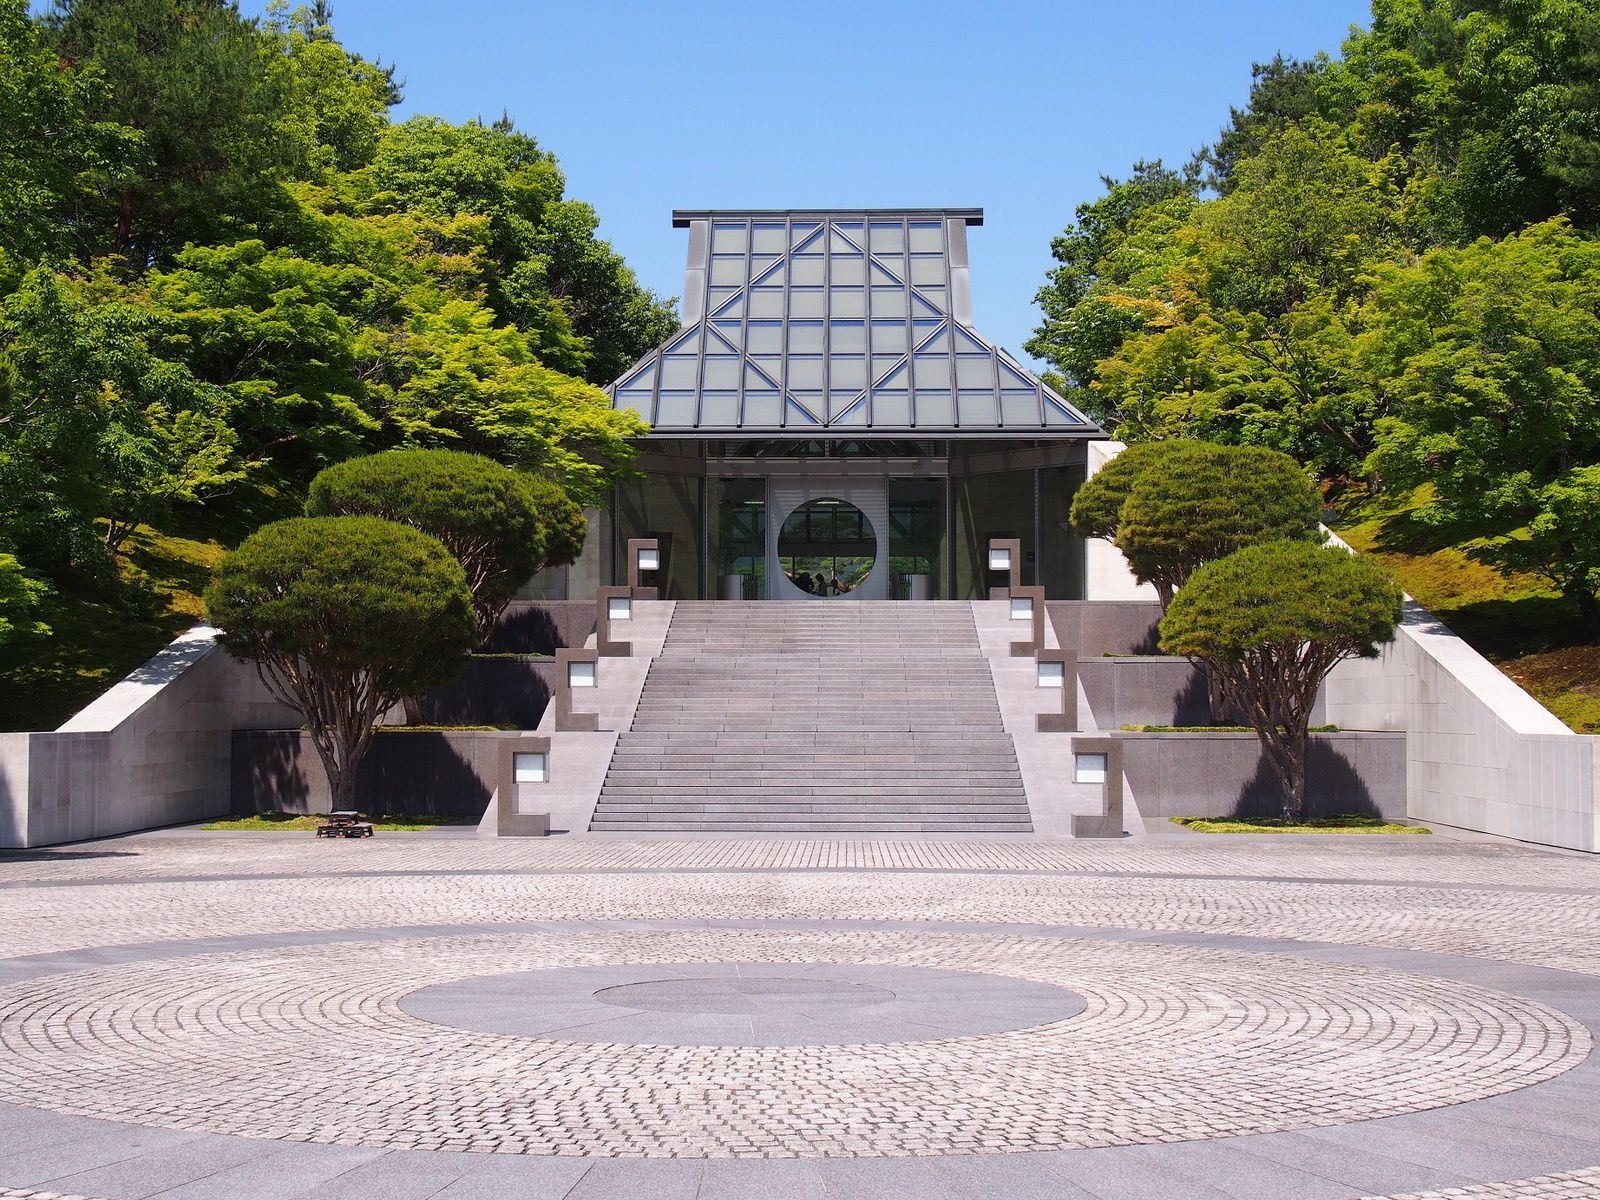 JAPON : LE MUSEE MIHO